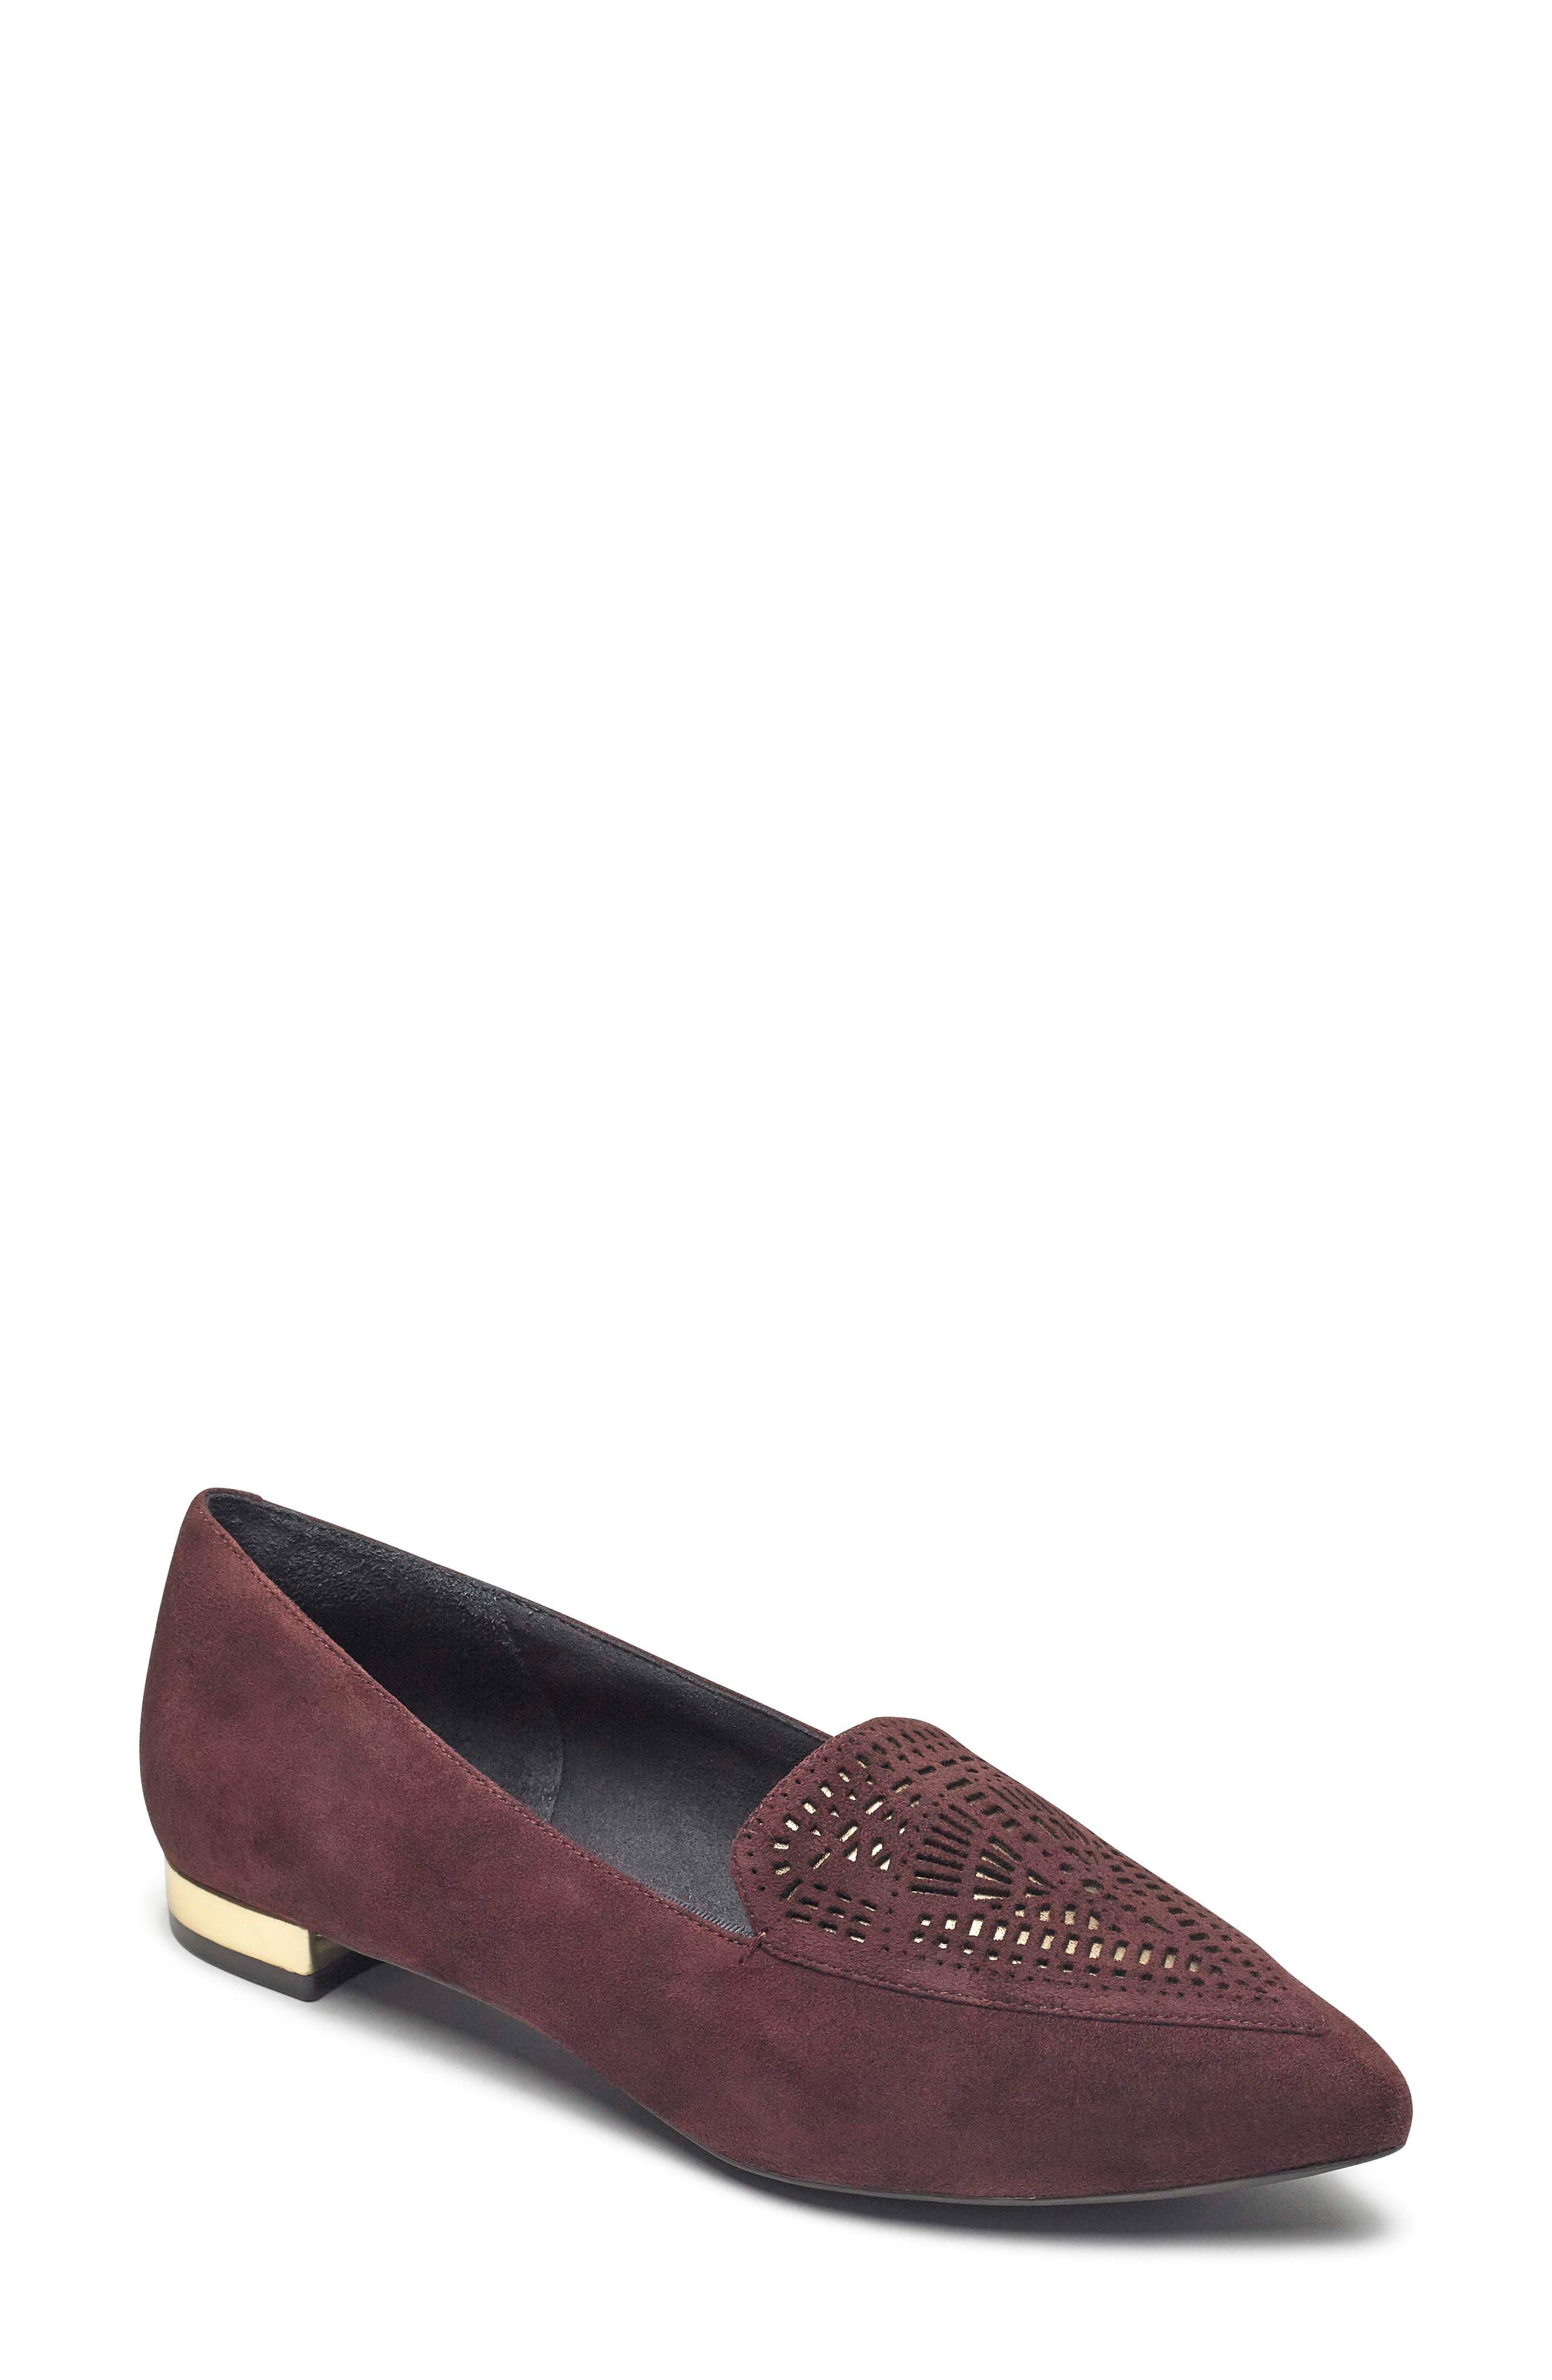 Total Motion Adelyn Loafer,                             Main thumbnail 1, color,                             MAROON